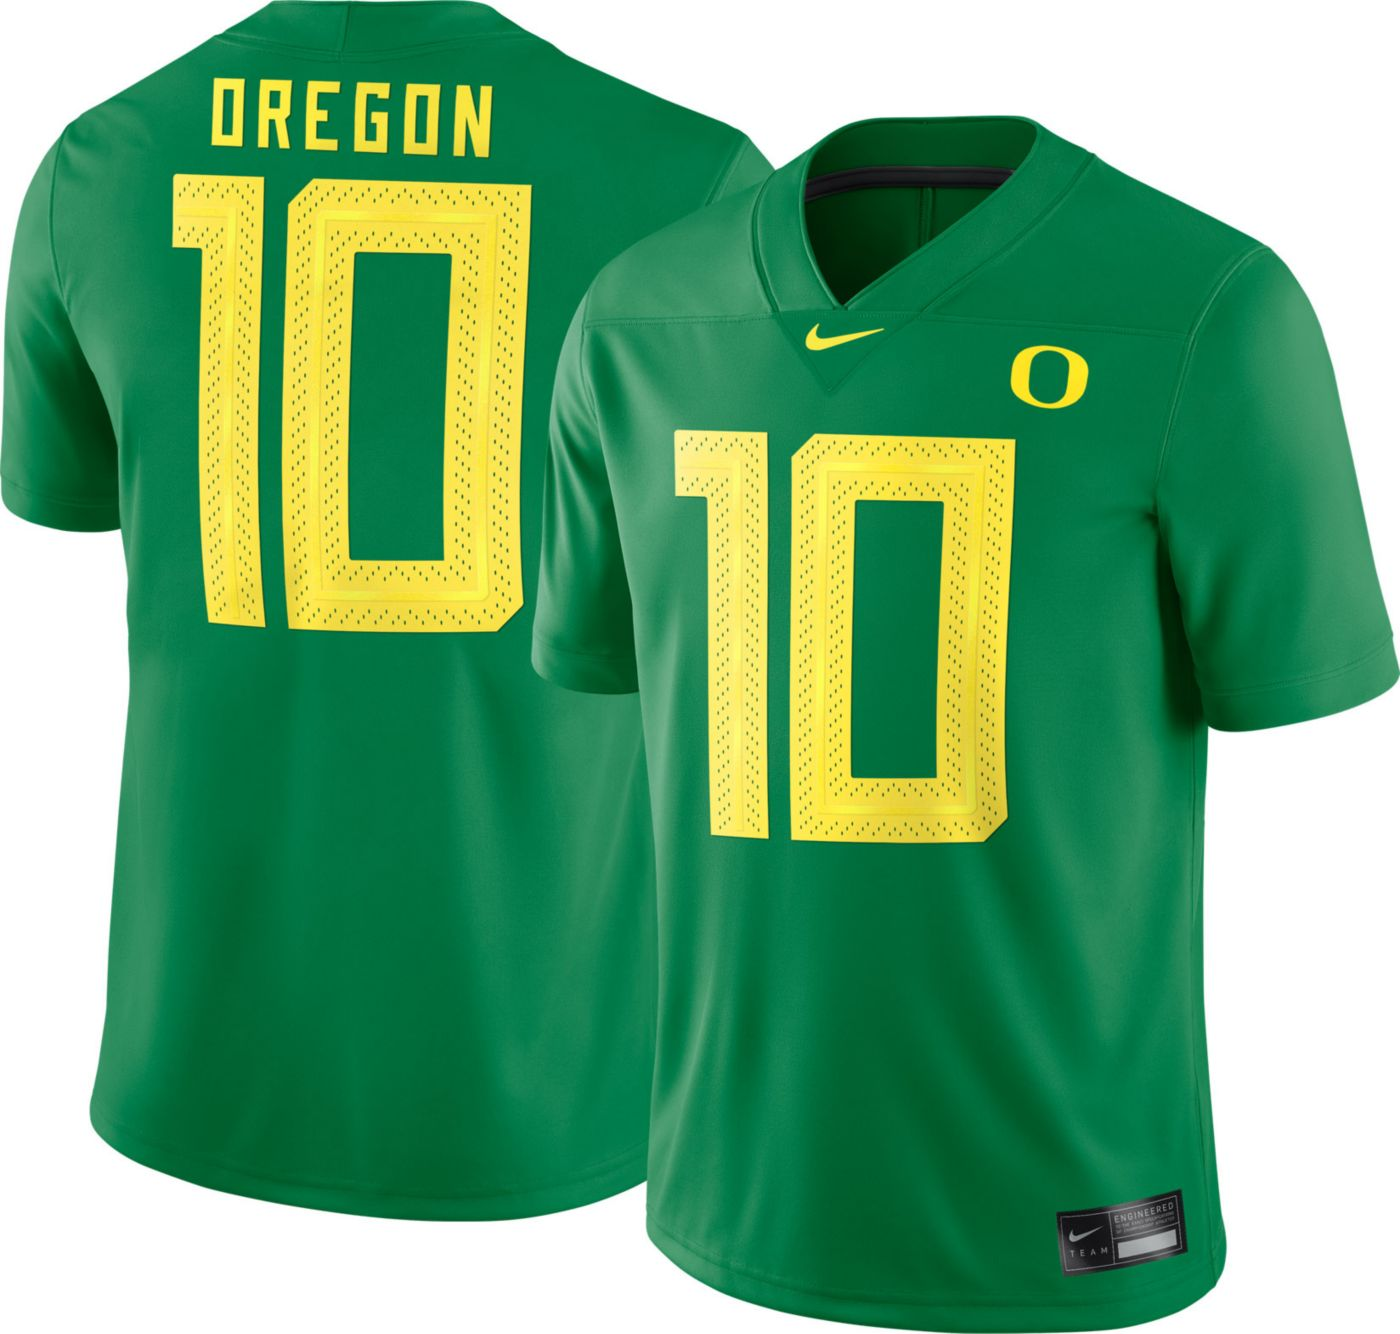 Nike Men's Oregon Ducks #36 Green Dri-FIT Game Football Jersey